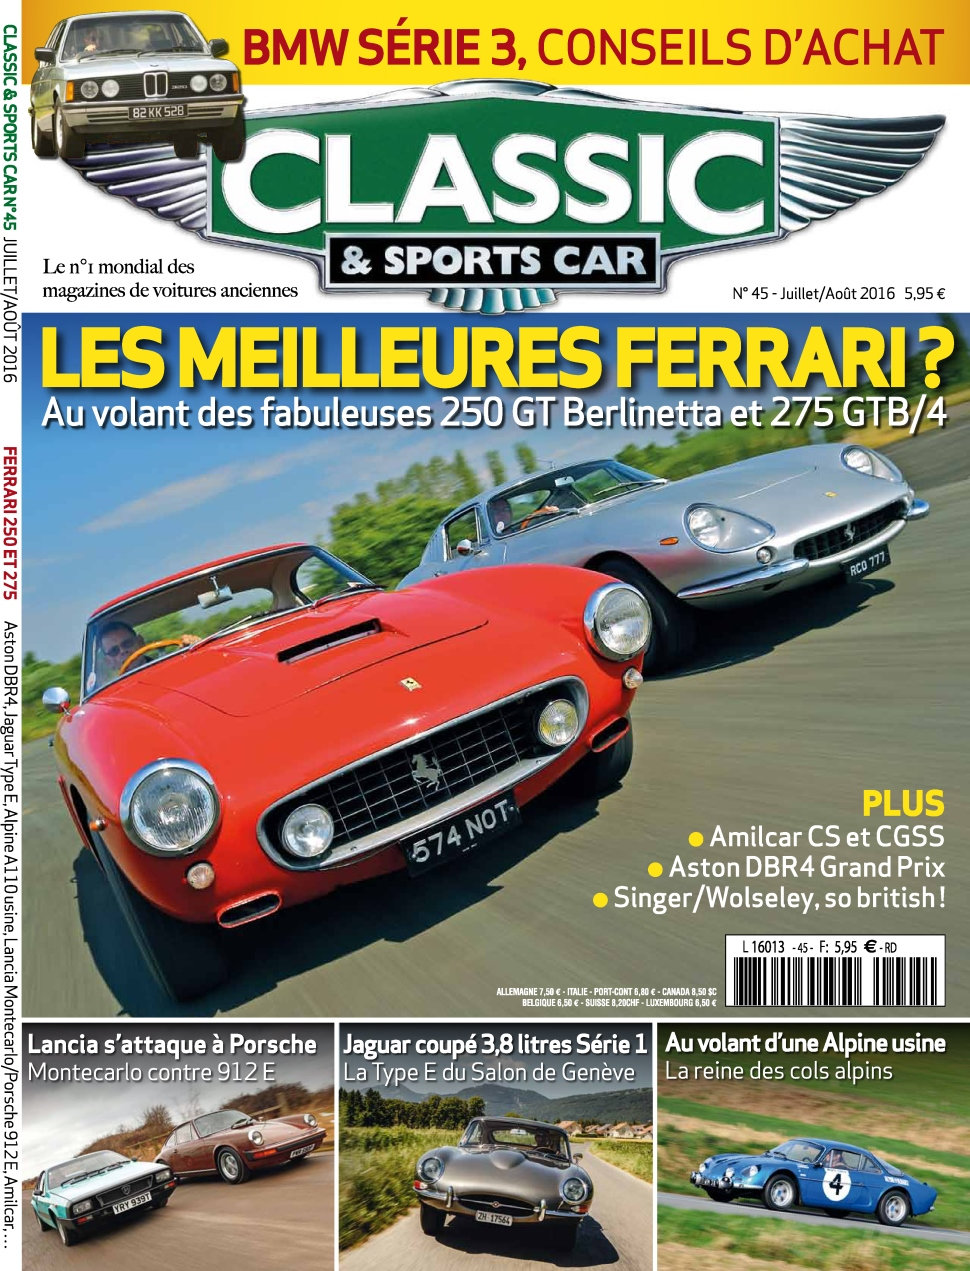 Classic & Sports Car N°45 - Juillet/Aout 2016